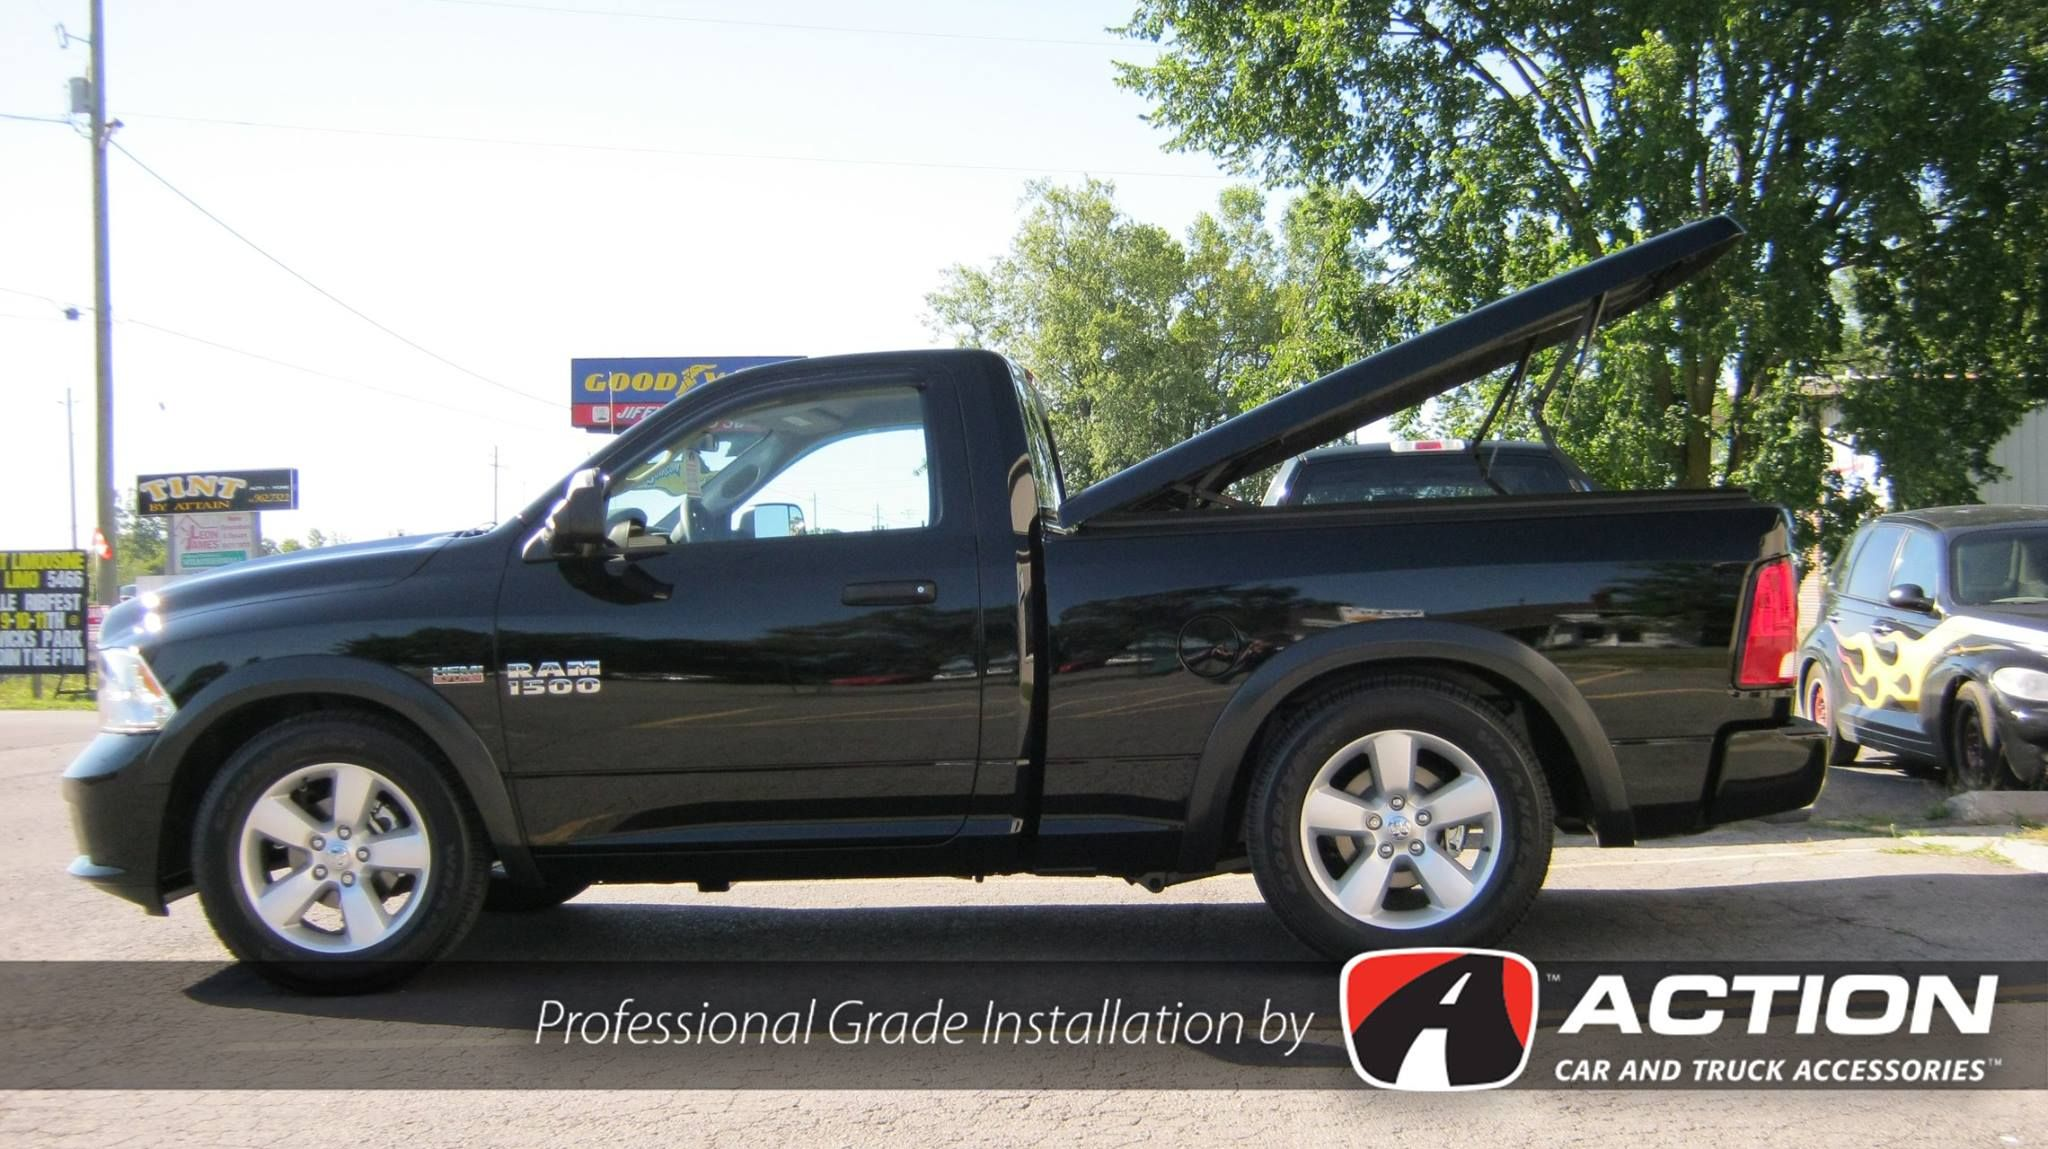 Ram 1500 With A Lsx Series Fiberglass Tonneau Cover By A R E Tonneau Cover Fiberglass Tonneau Cover Cars Trucks